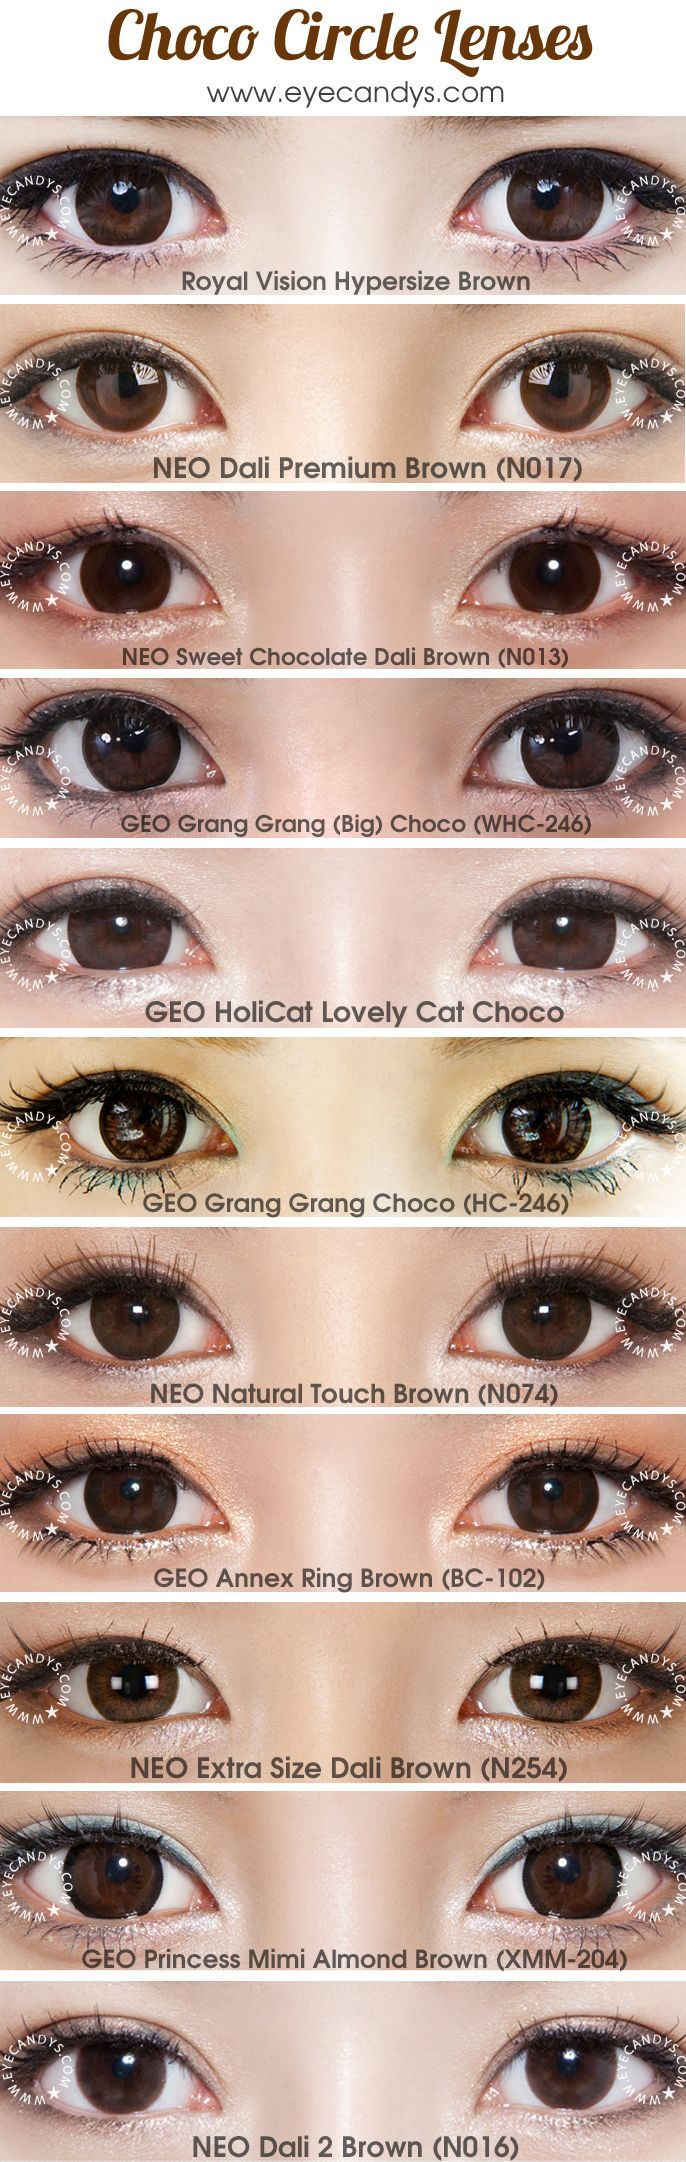 Choco colored prescription/plano colored contacts (doll eye circle lenses). FREE Shipping Worldwide! SHOP >> http://www.eyecandys.com/brown/hazel/